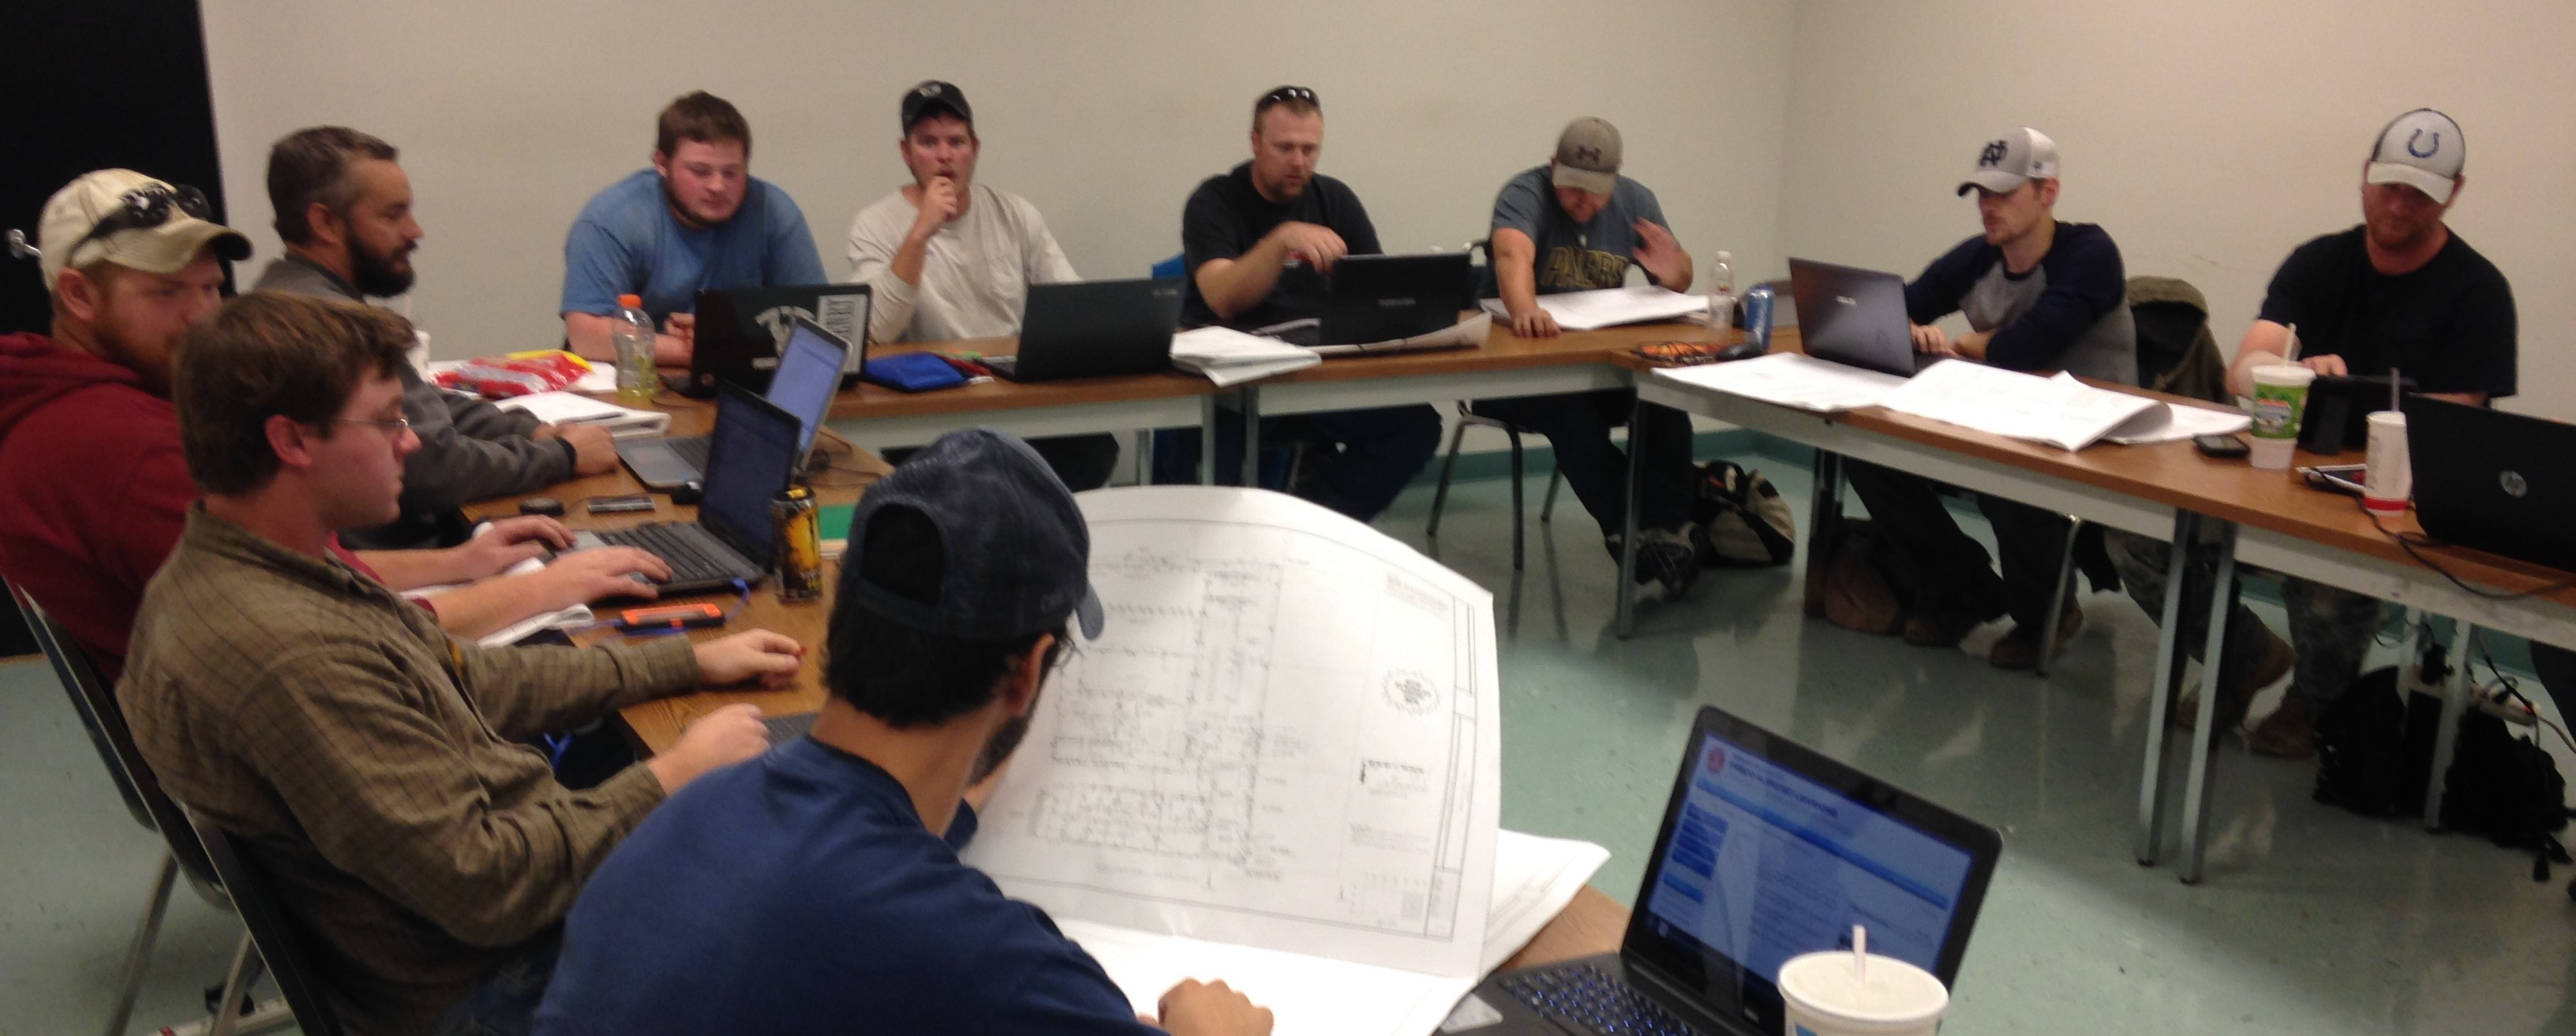 Students in the classroom at the NECA/IBEW Electrical JATC in Evansville, IN.